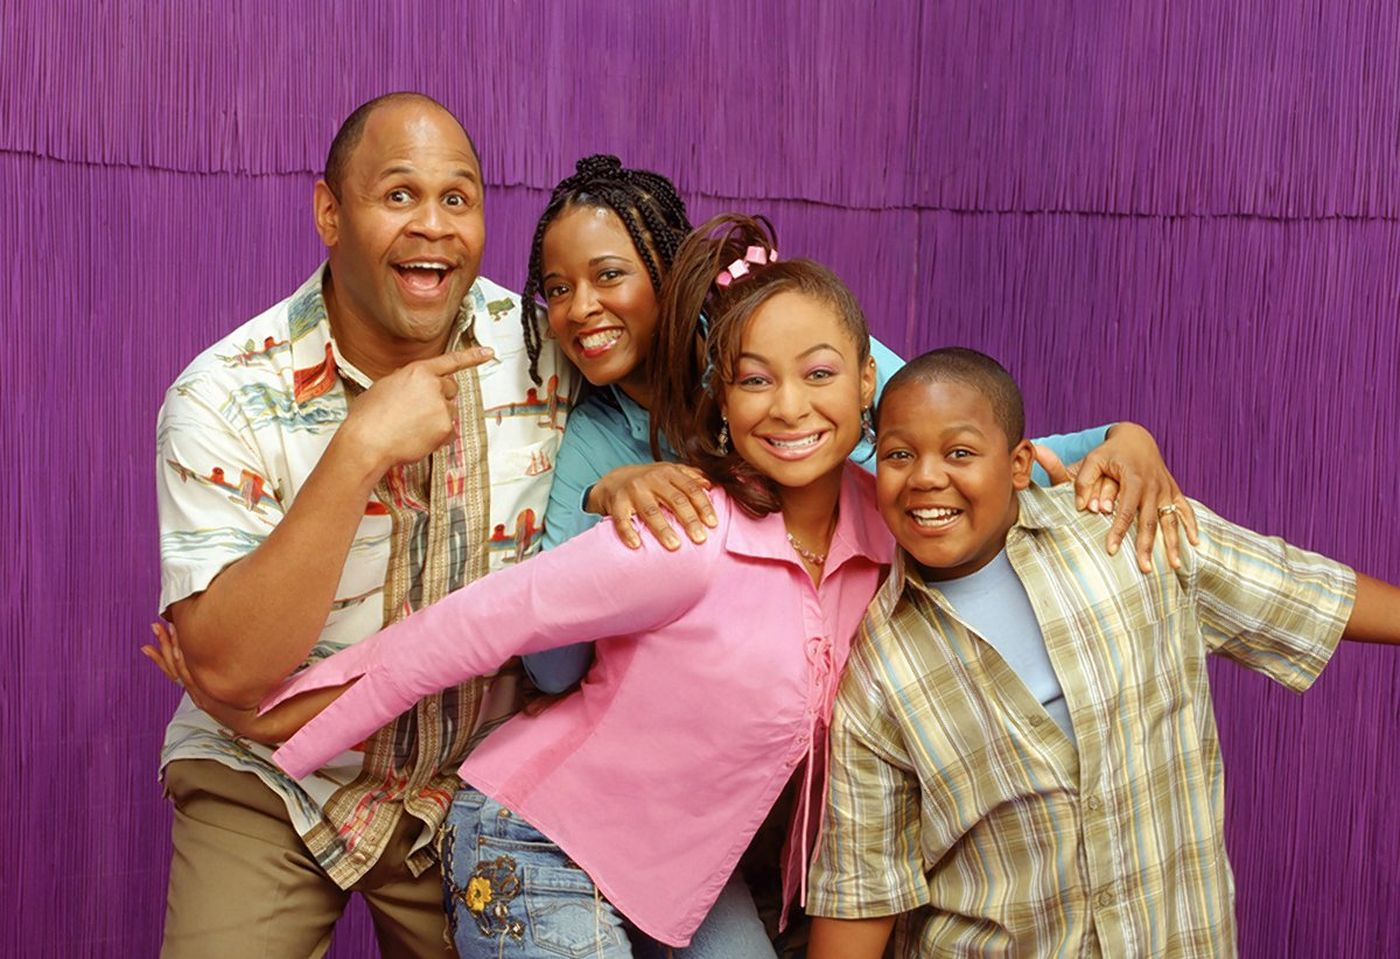 the cast of That's So Raven